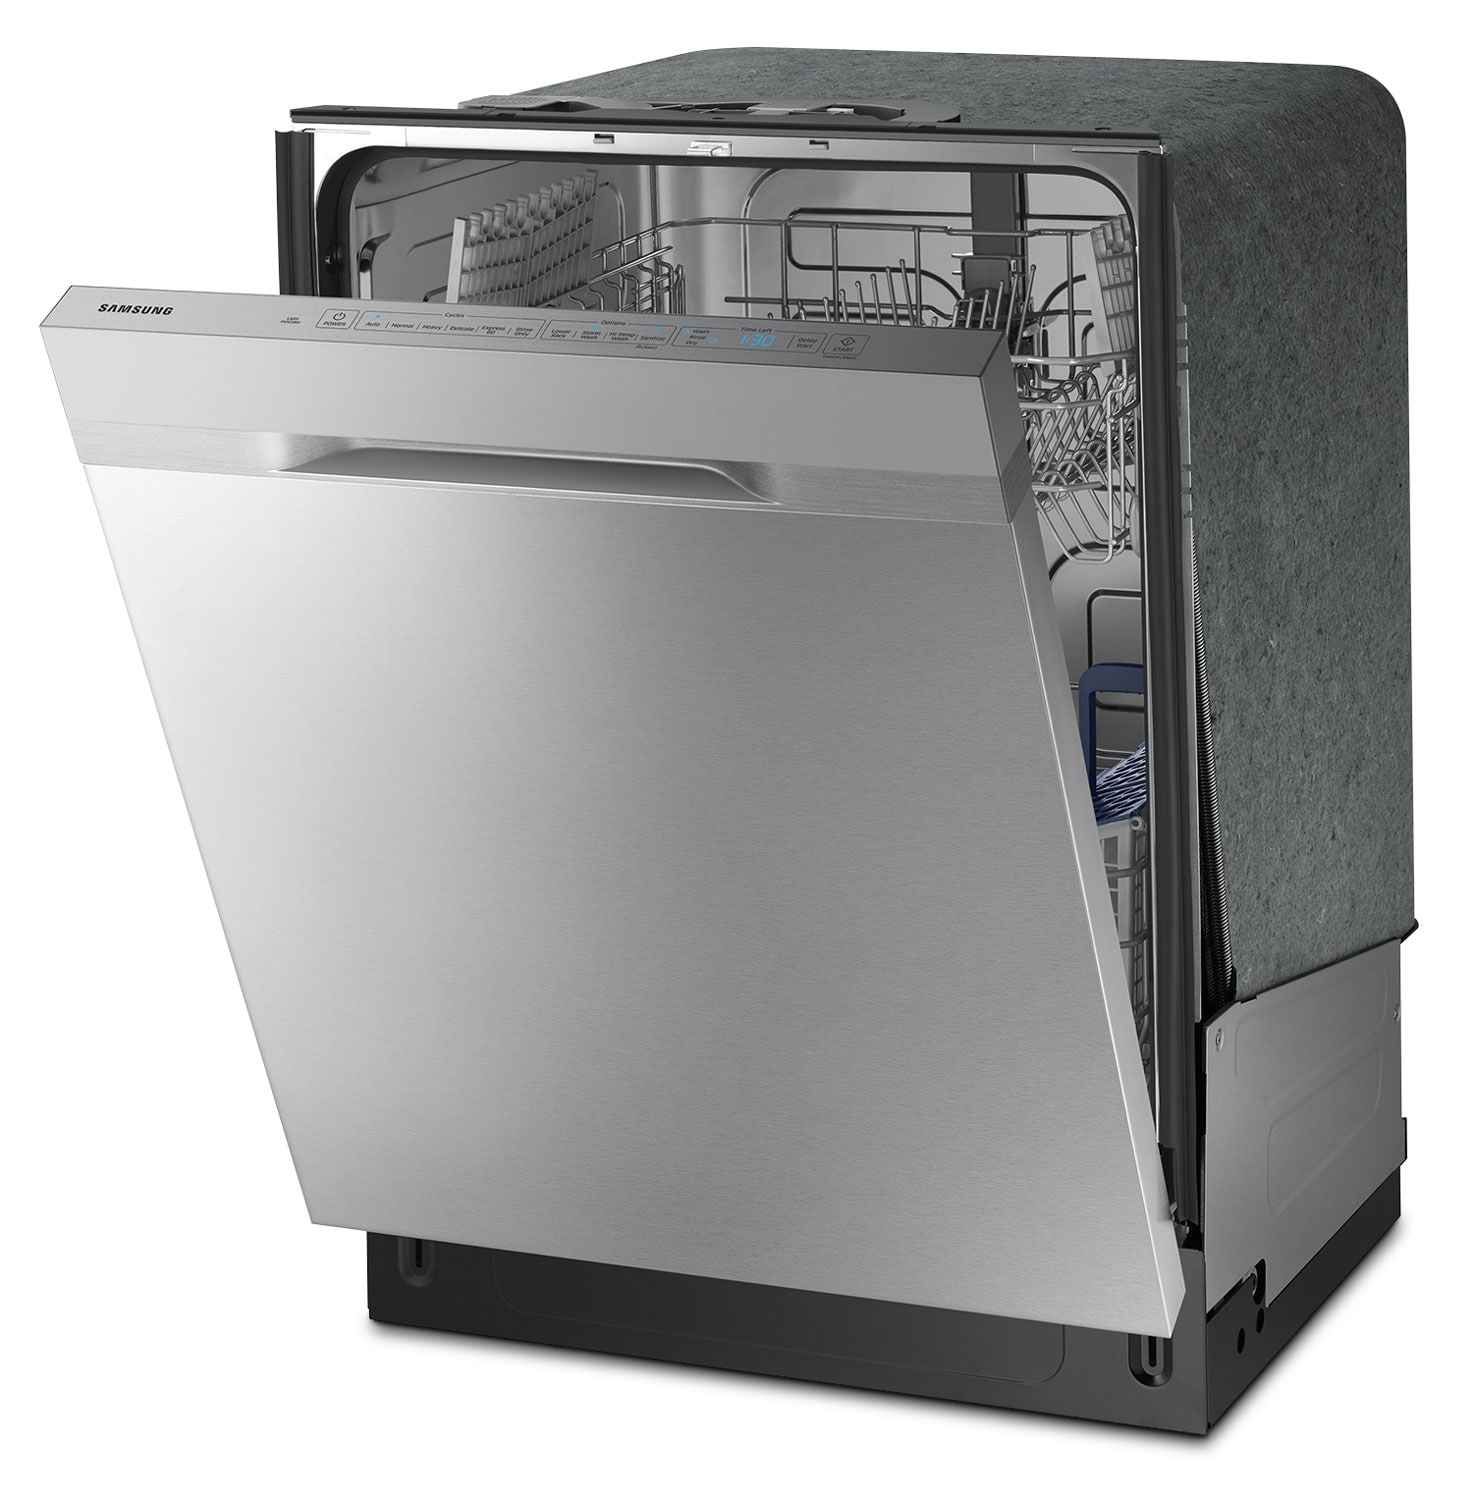 samsung built in dishwasher with auto open drying. Black Bedroom Furniture Sets. Home Design Ideas